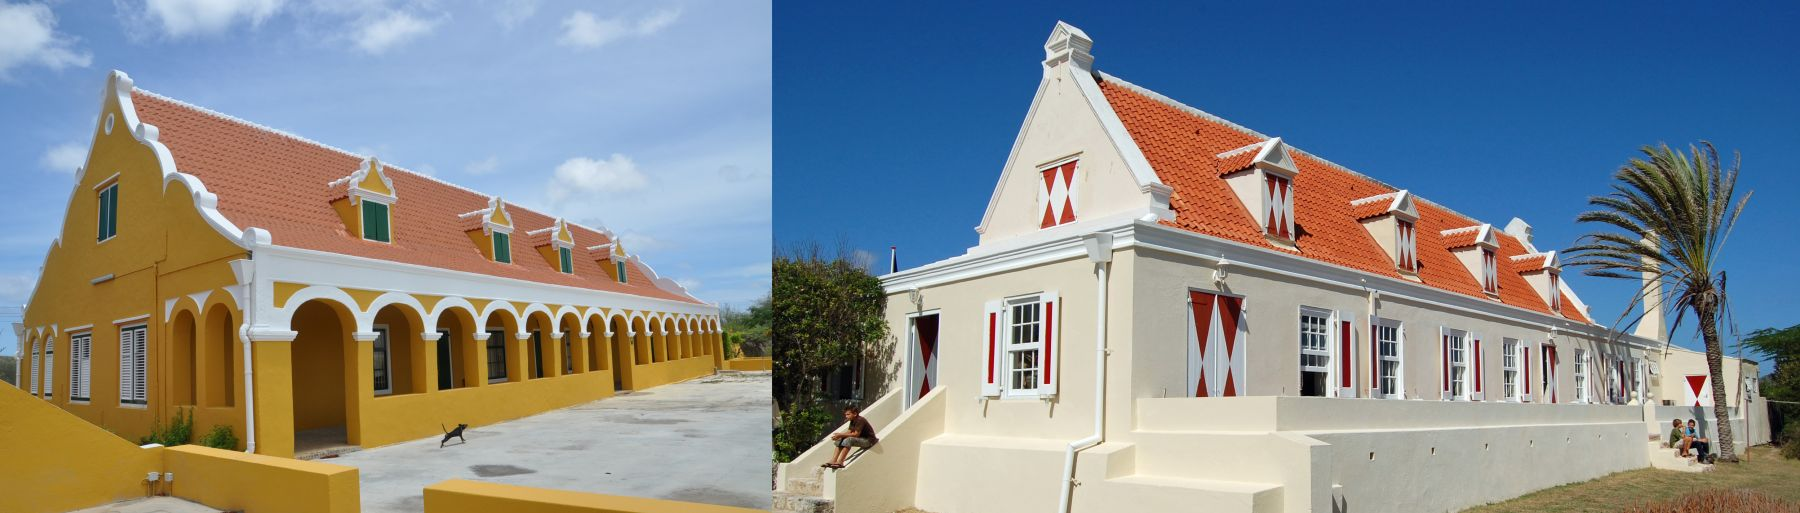 Photos of landhouses in Curacao